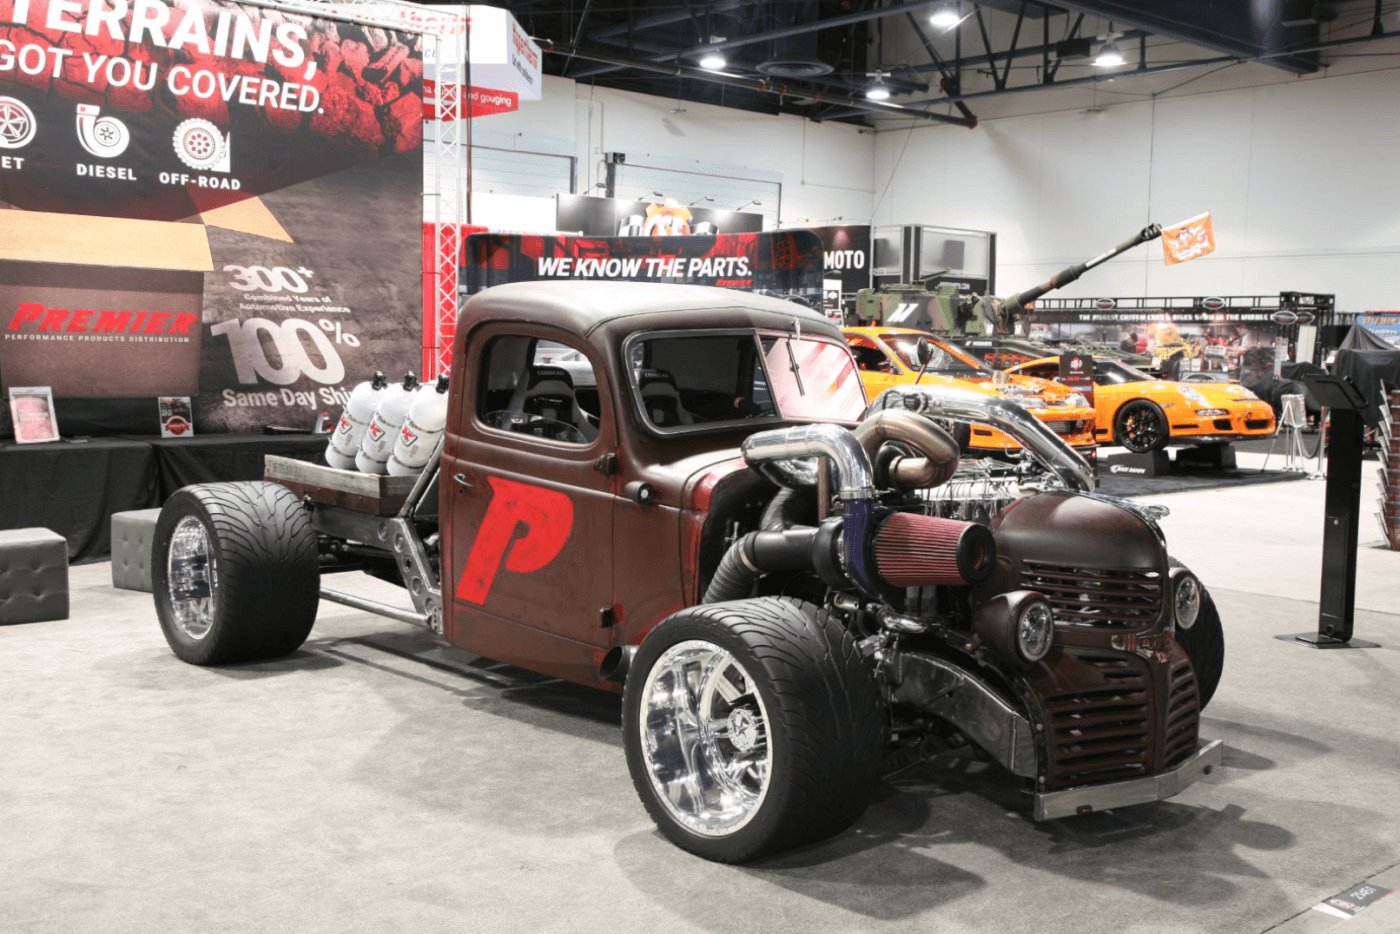 Premier Performance built this rat rod that were sure could eat just about any other rat rod on the track, and the dyno as well! Powered by a 6BT complete with a compound turbo setup and six—yes six—15 lb. nitrous bottles in the bed. Talk about overkill!